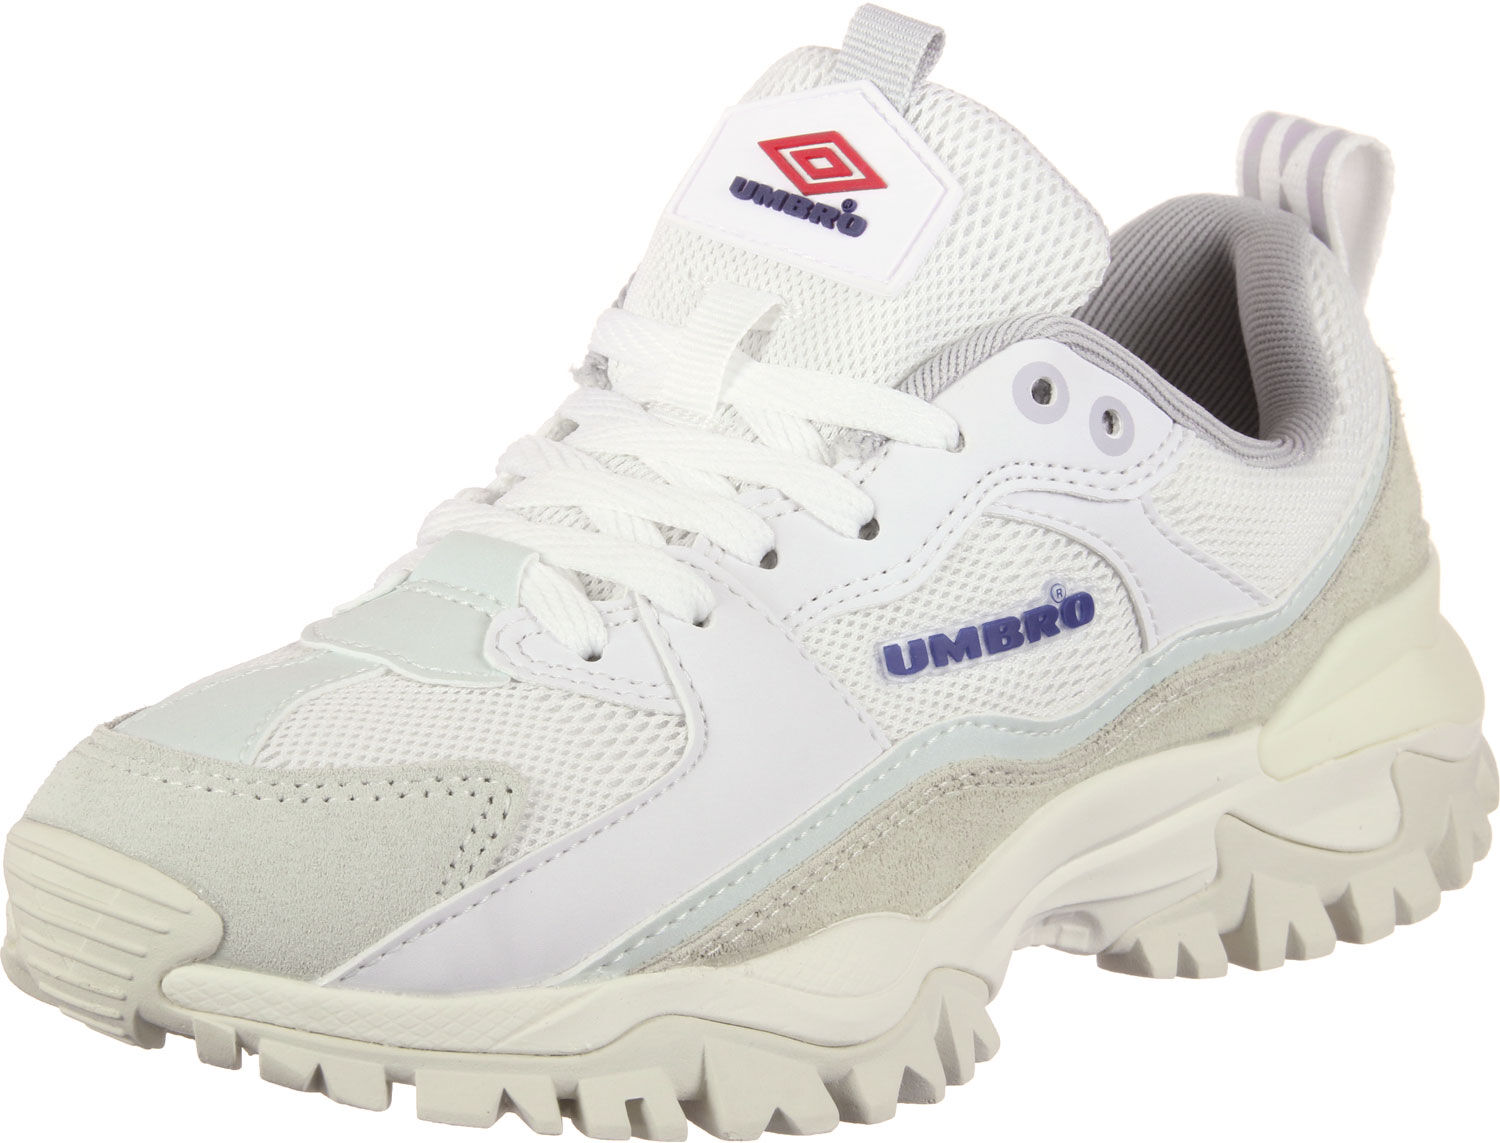 Umbro Bumpy - Sneakers Low at Stylefile